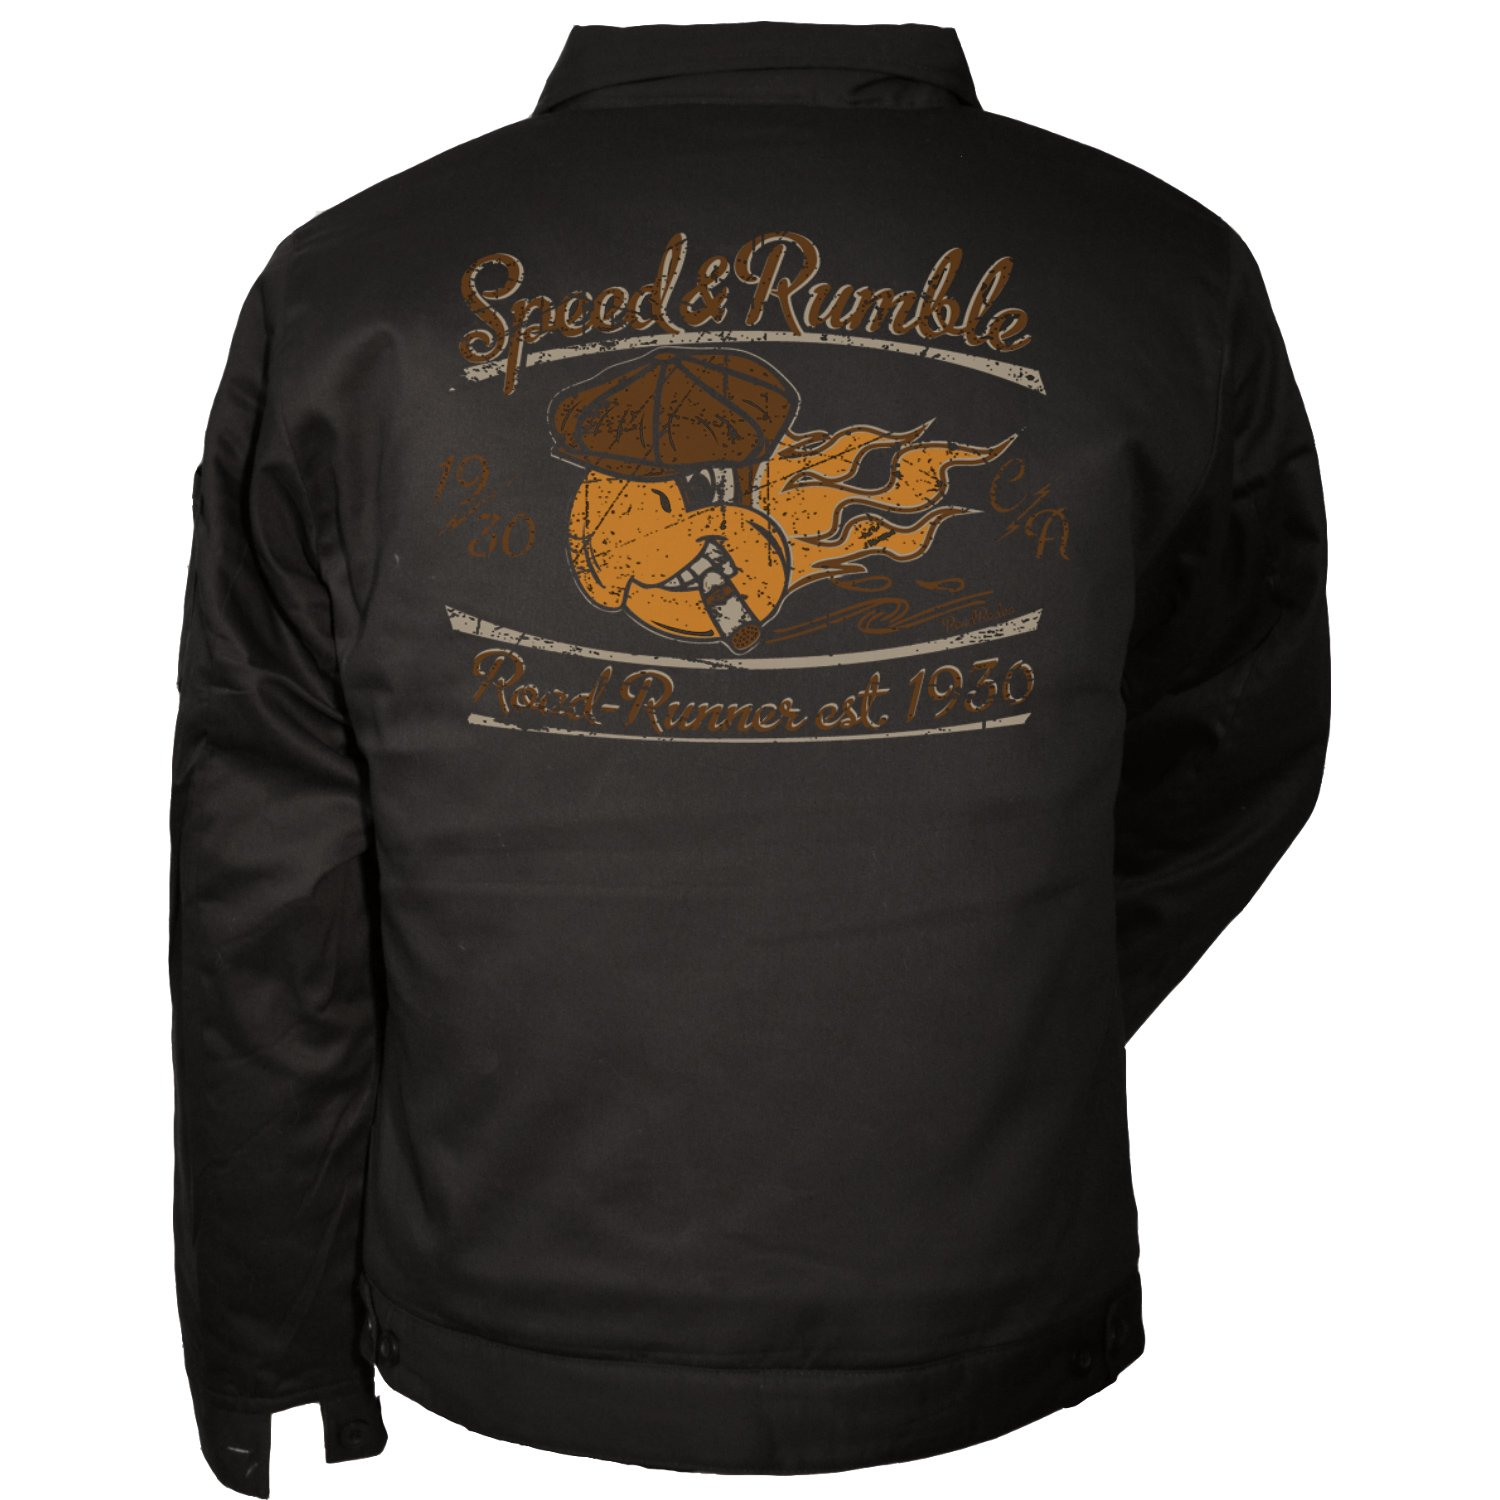 Worker jacket, US Car, Rock'n'Roll, Hot Rod, V8, Speed and Rumble